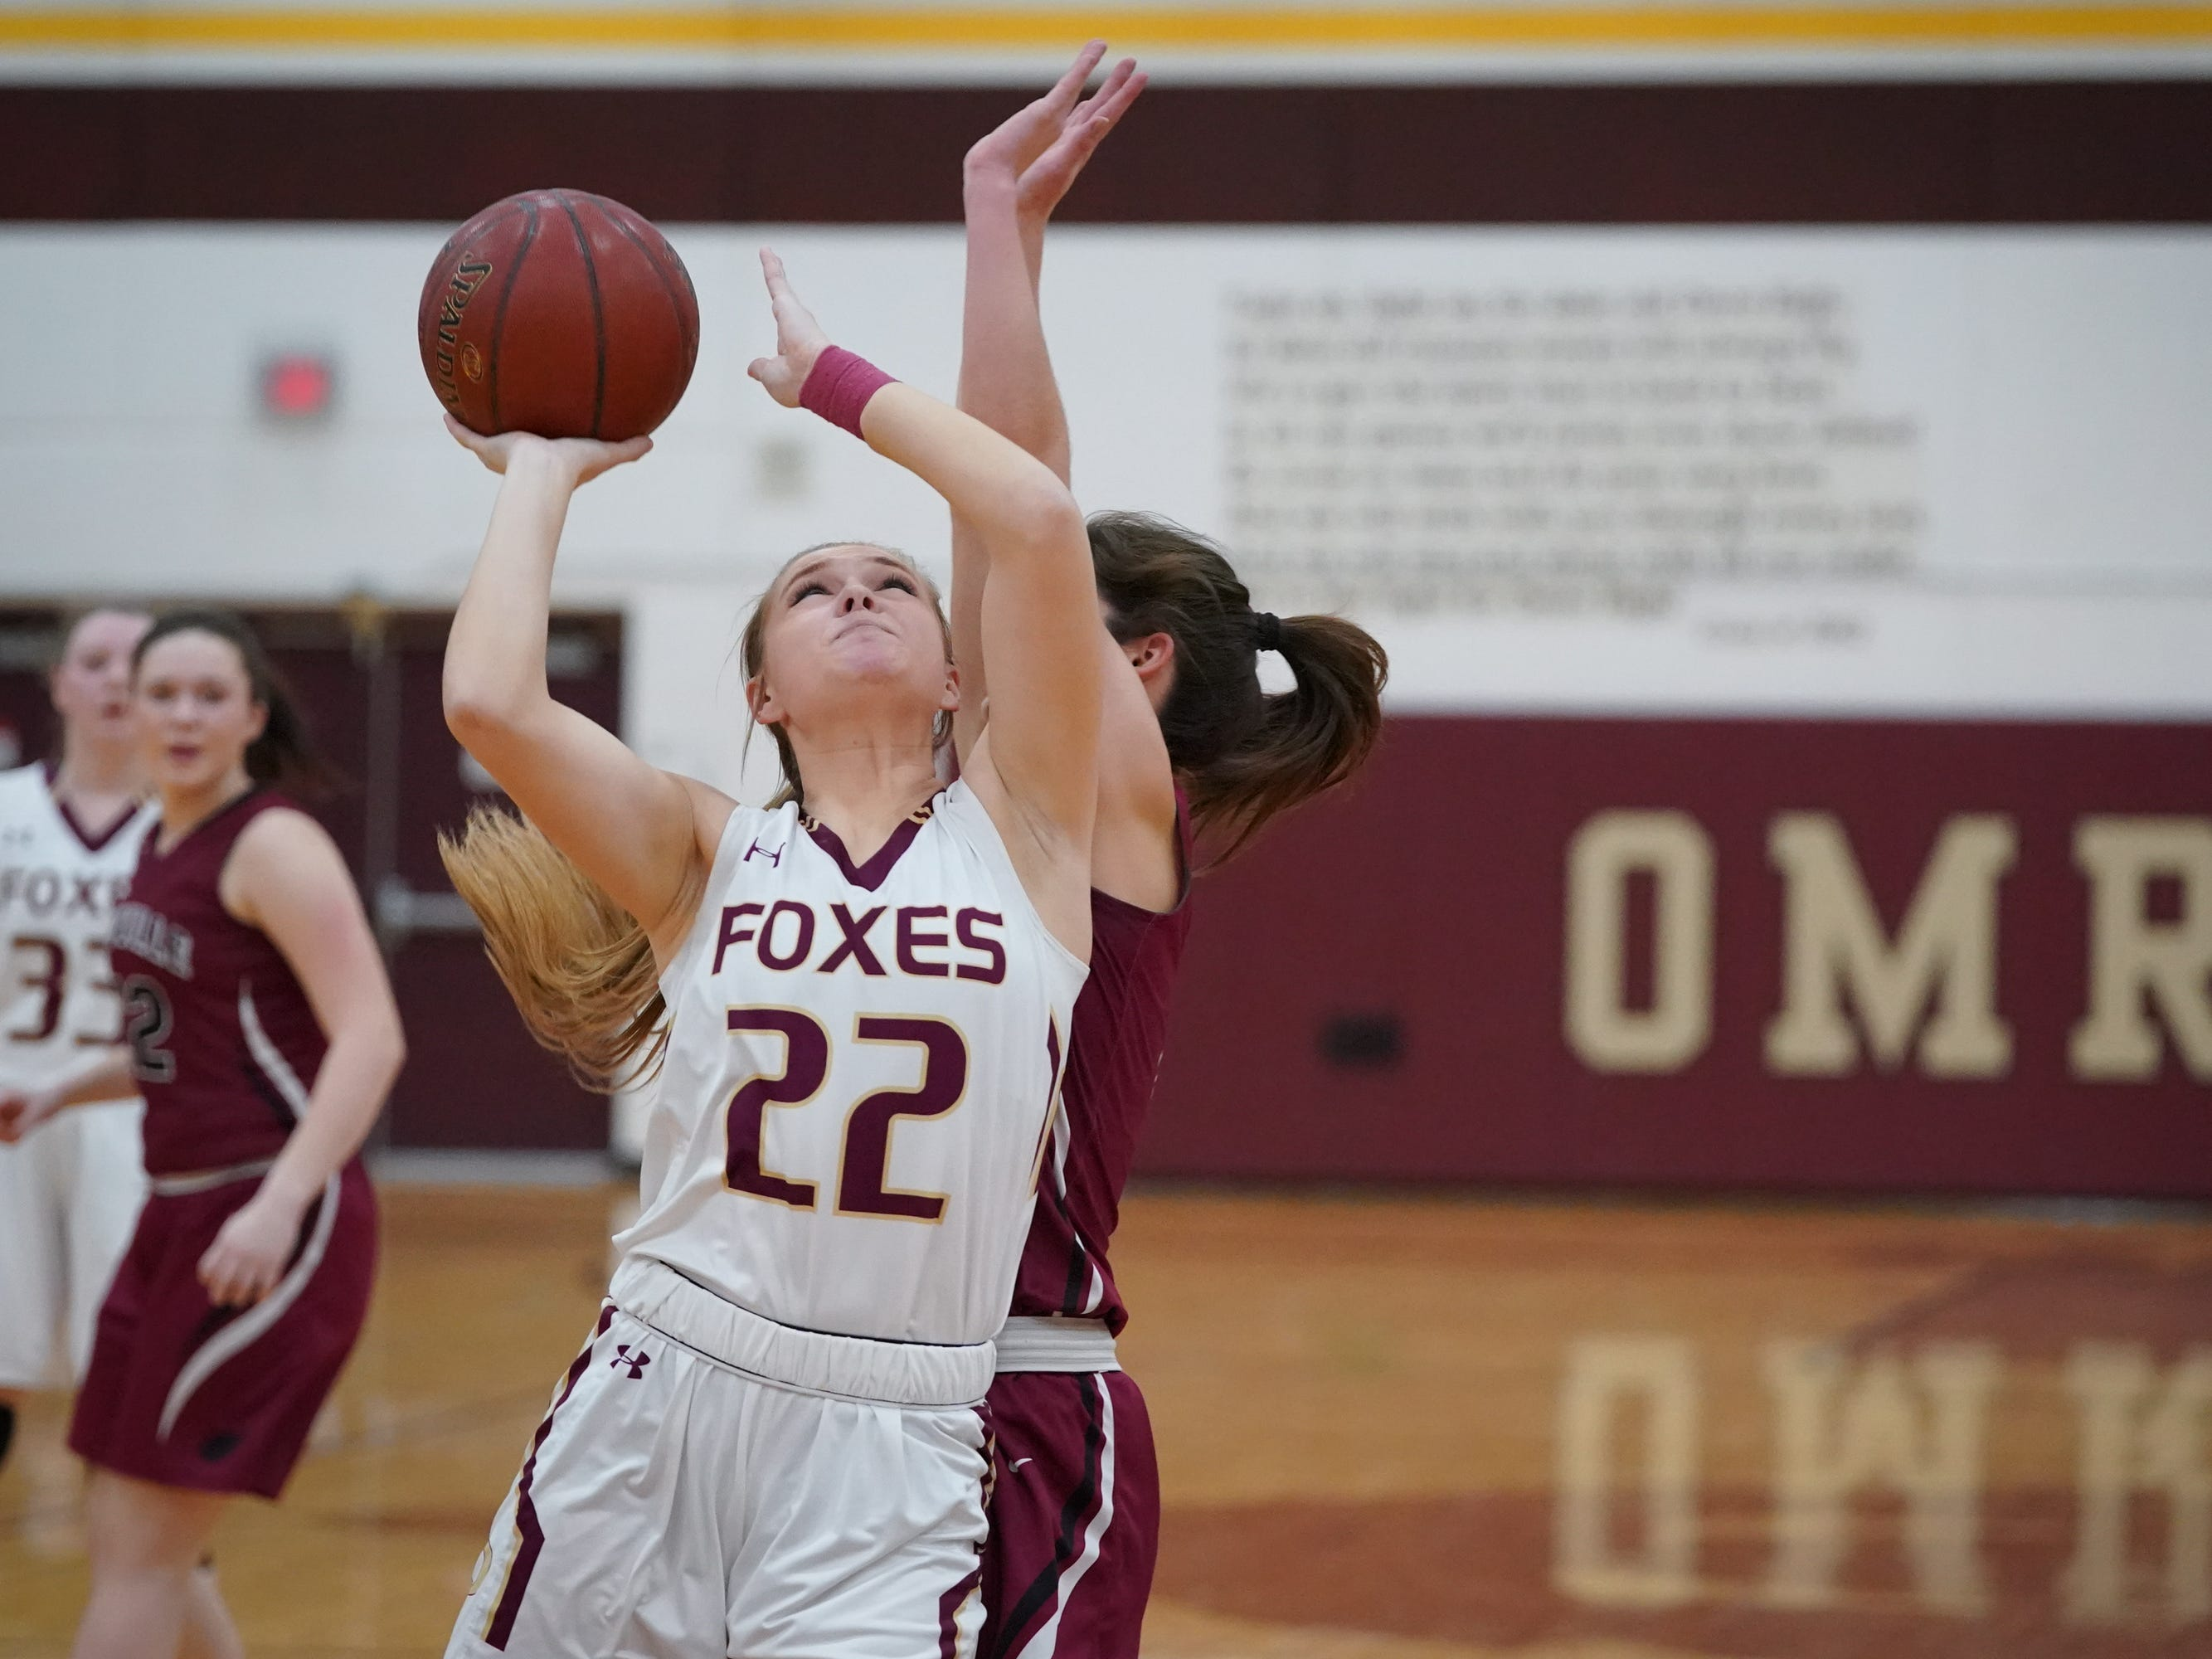 Jadyn Yonke (22) of Omro goes up for a shot. The Omro Foxes hosted the Mayville Cardinals in a Flyway Conference basketball game Friday evening, January 4, 2019.